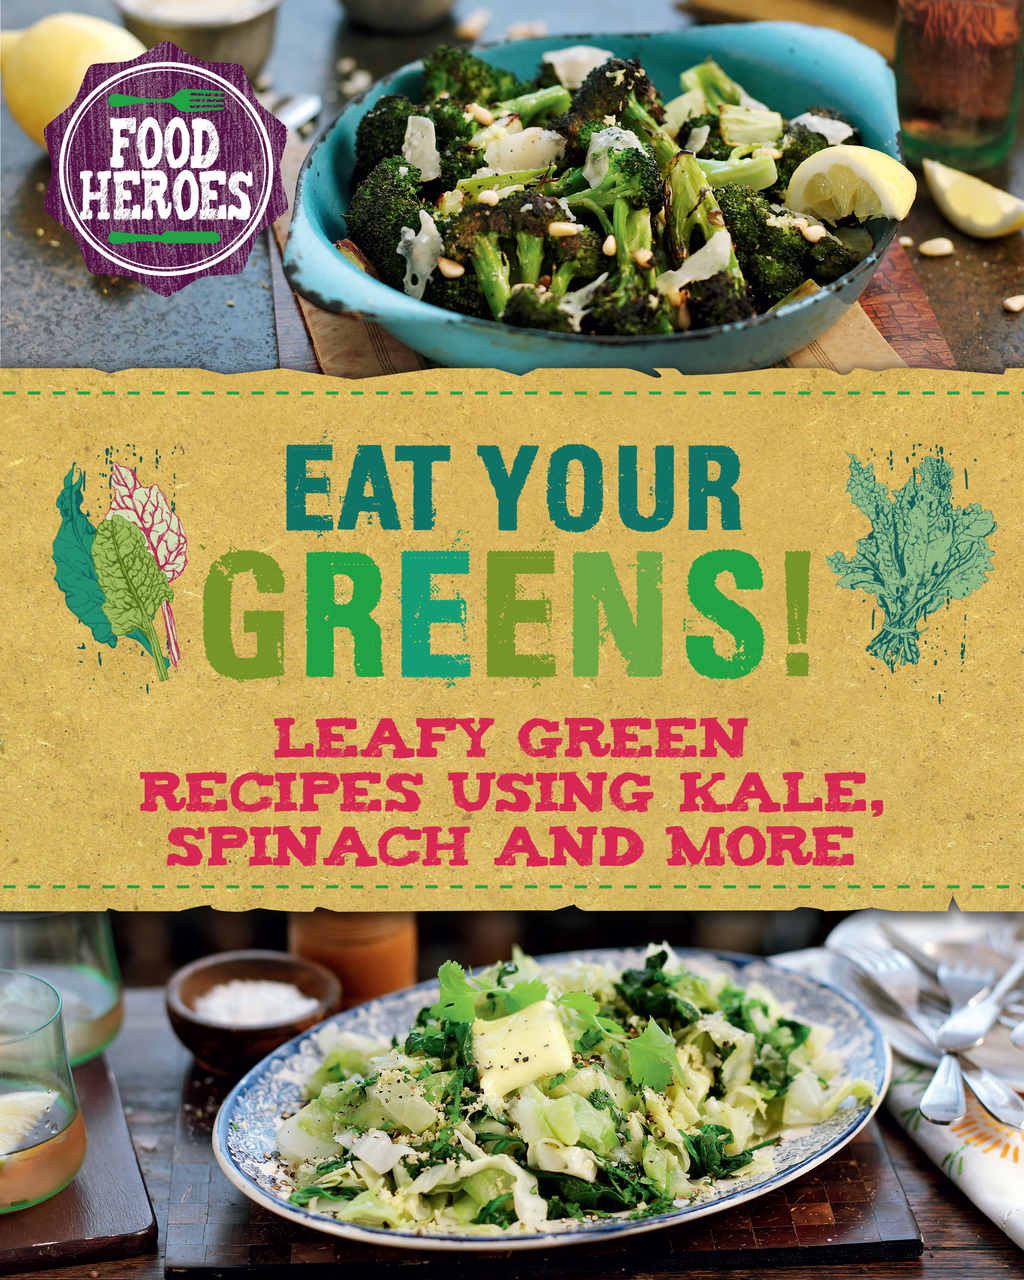 Eat Your Greens! Leafy green recipes using Kale,  Spinach and more